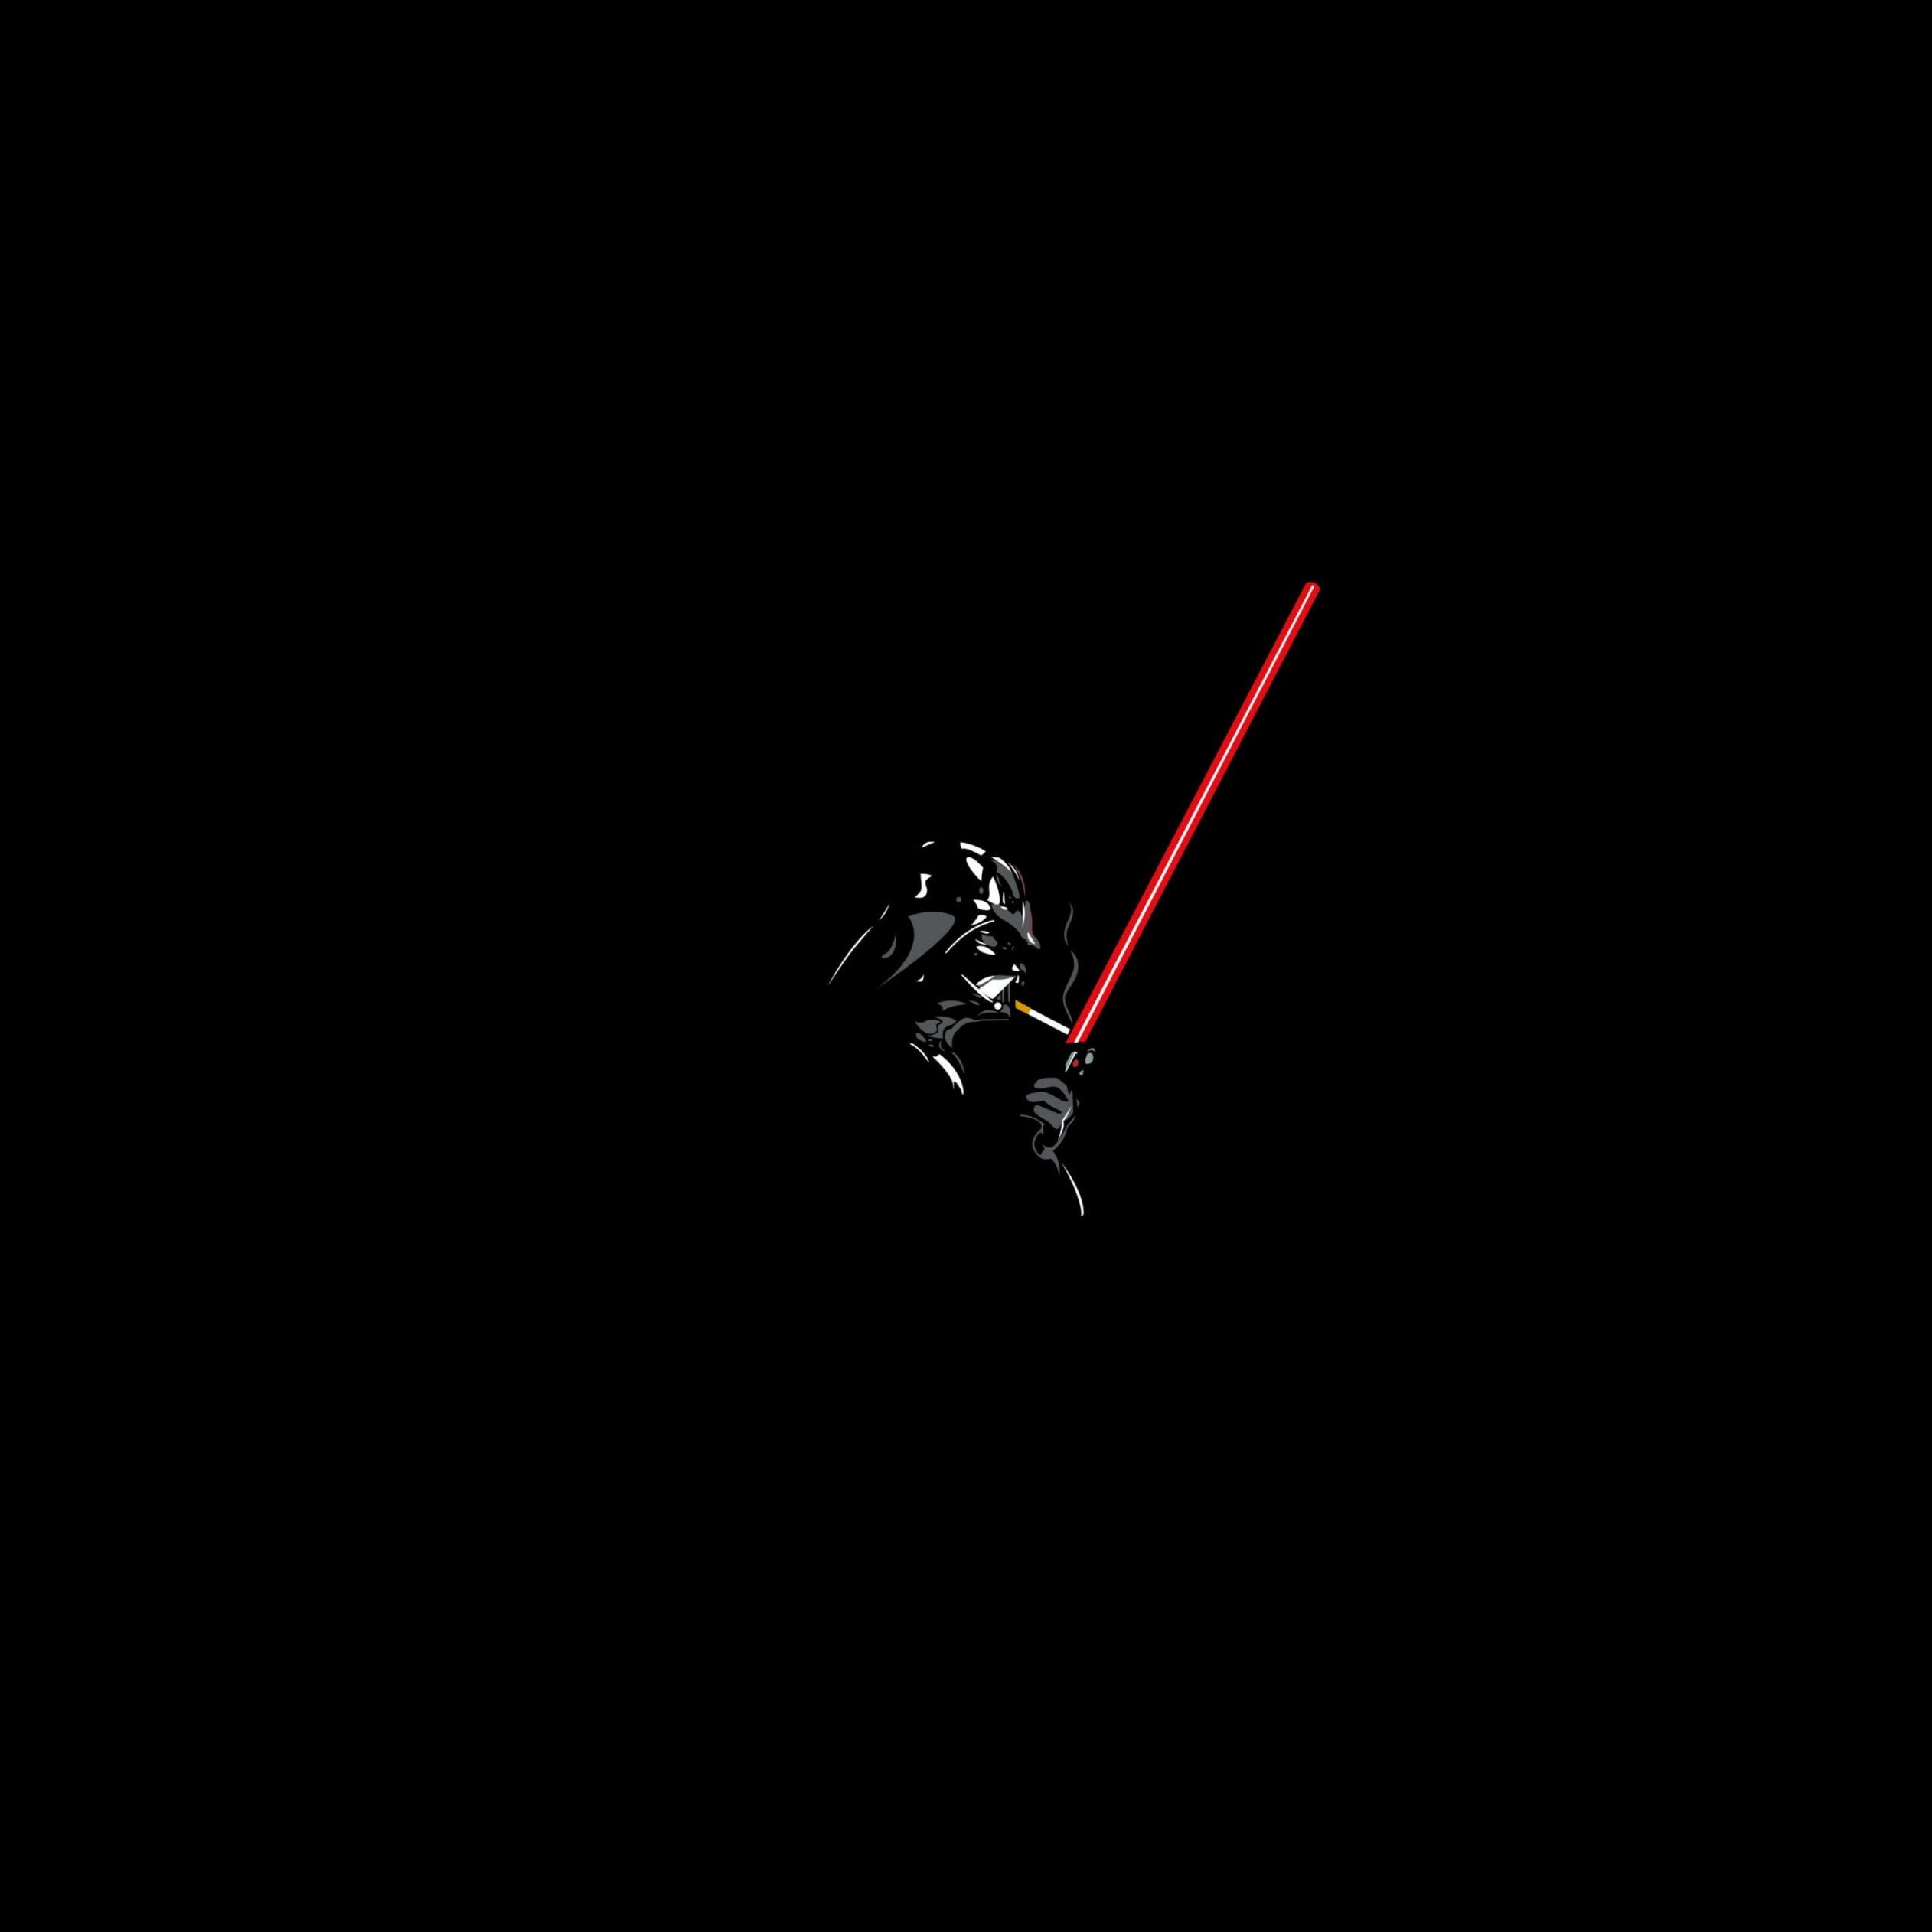 Darth Vader Lighting a Cigarette Wallpaper for Apple iPad 4